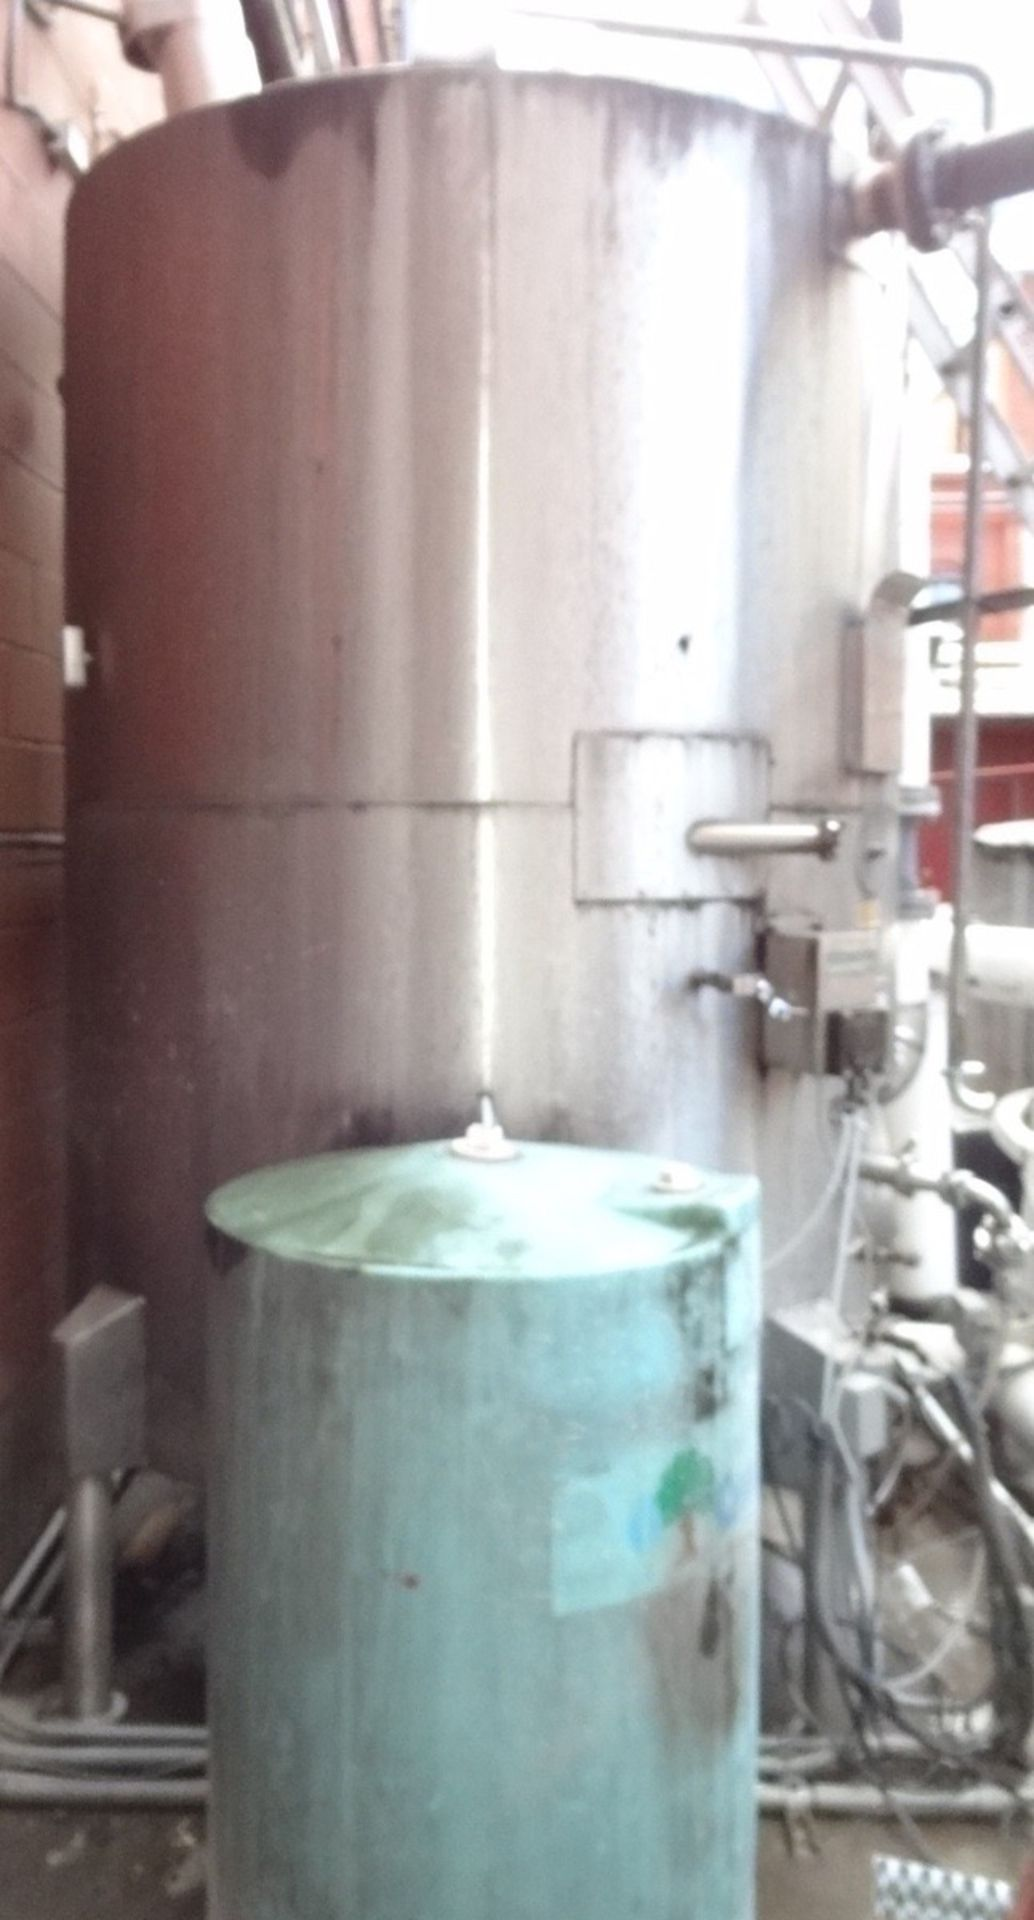 Lot 41 - JV Northwest 1450 Gallon Jacketed Vertical Tank with Top Manway | Rig Fee: $850